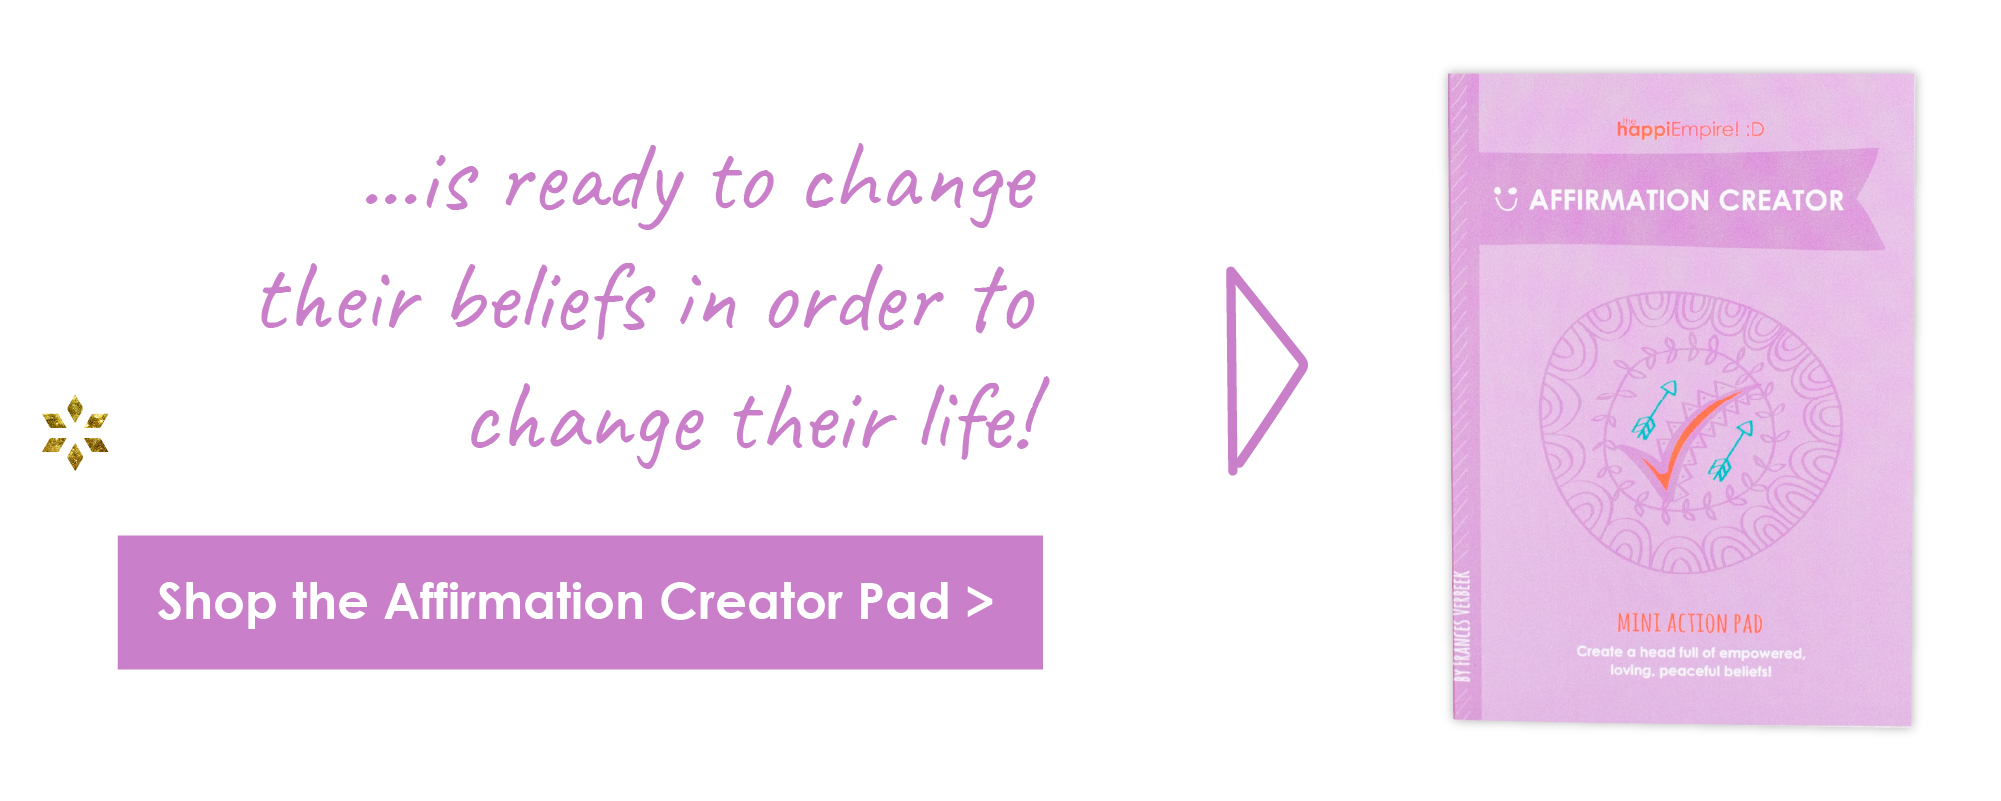 Shop the Affirmation Creator Pad